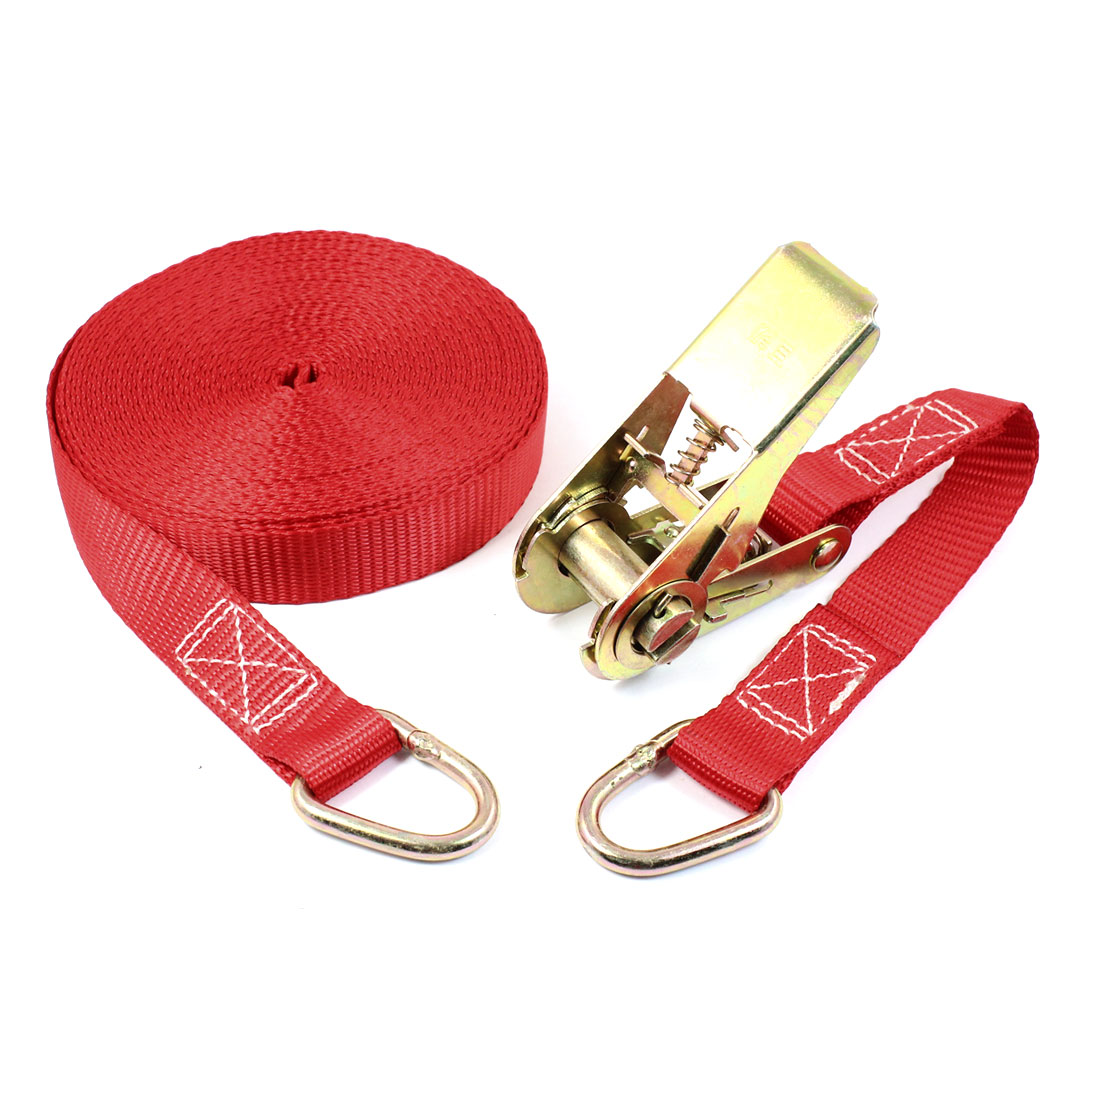 Metal D Shape Loop Cargo Binding Ratchet Tie Down Strap 10M 33ft Red